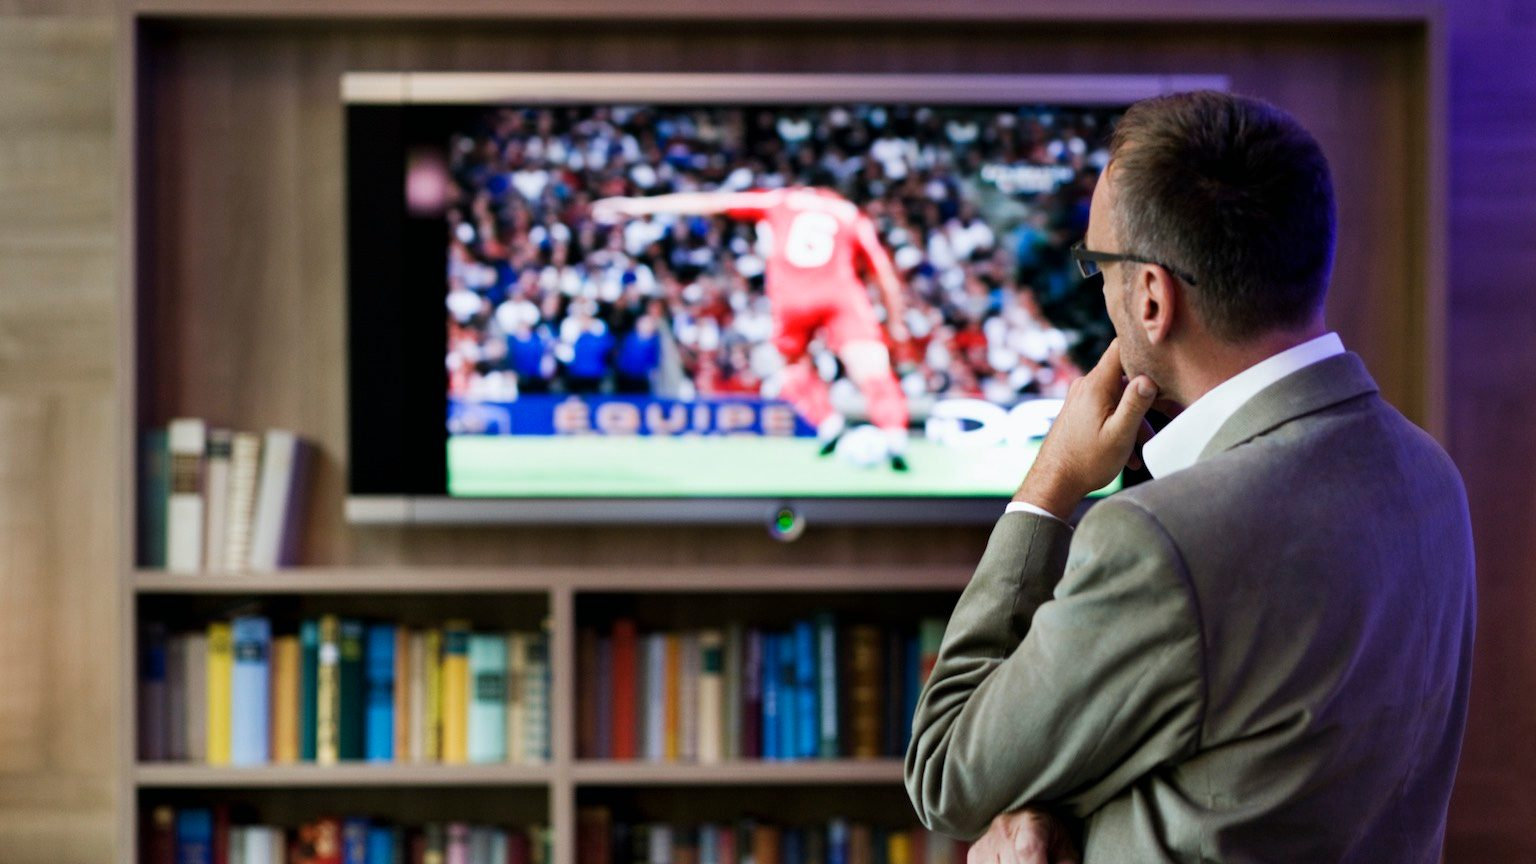 Man watching soccer on flat panel television